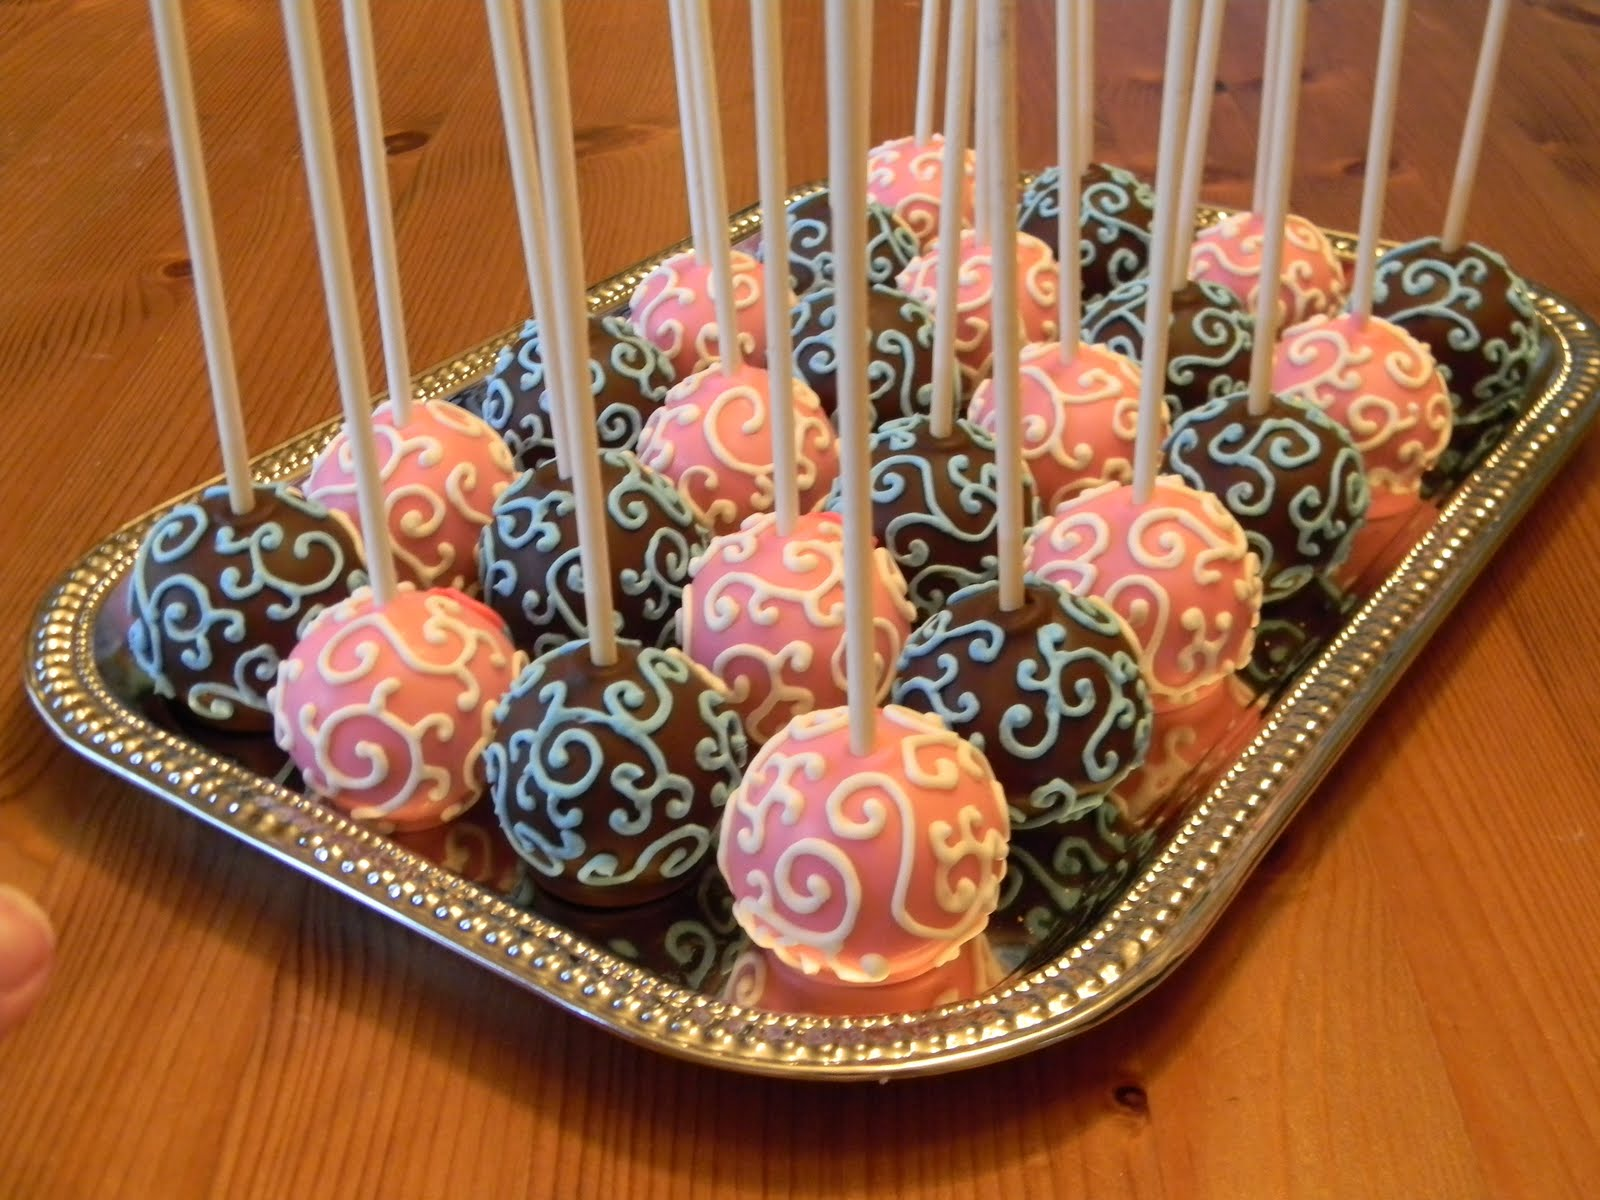 Cake Pop Decorating Ideas & 8 Decorating With Cakes Cake Pops Photo - How to Make Perfect Cake ...